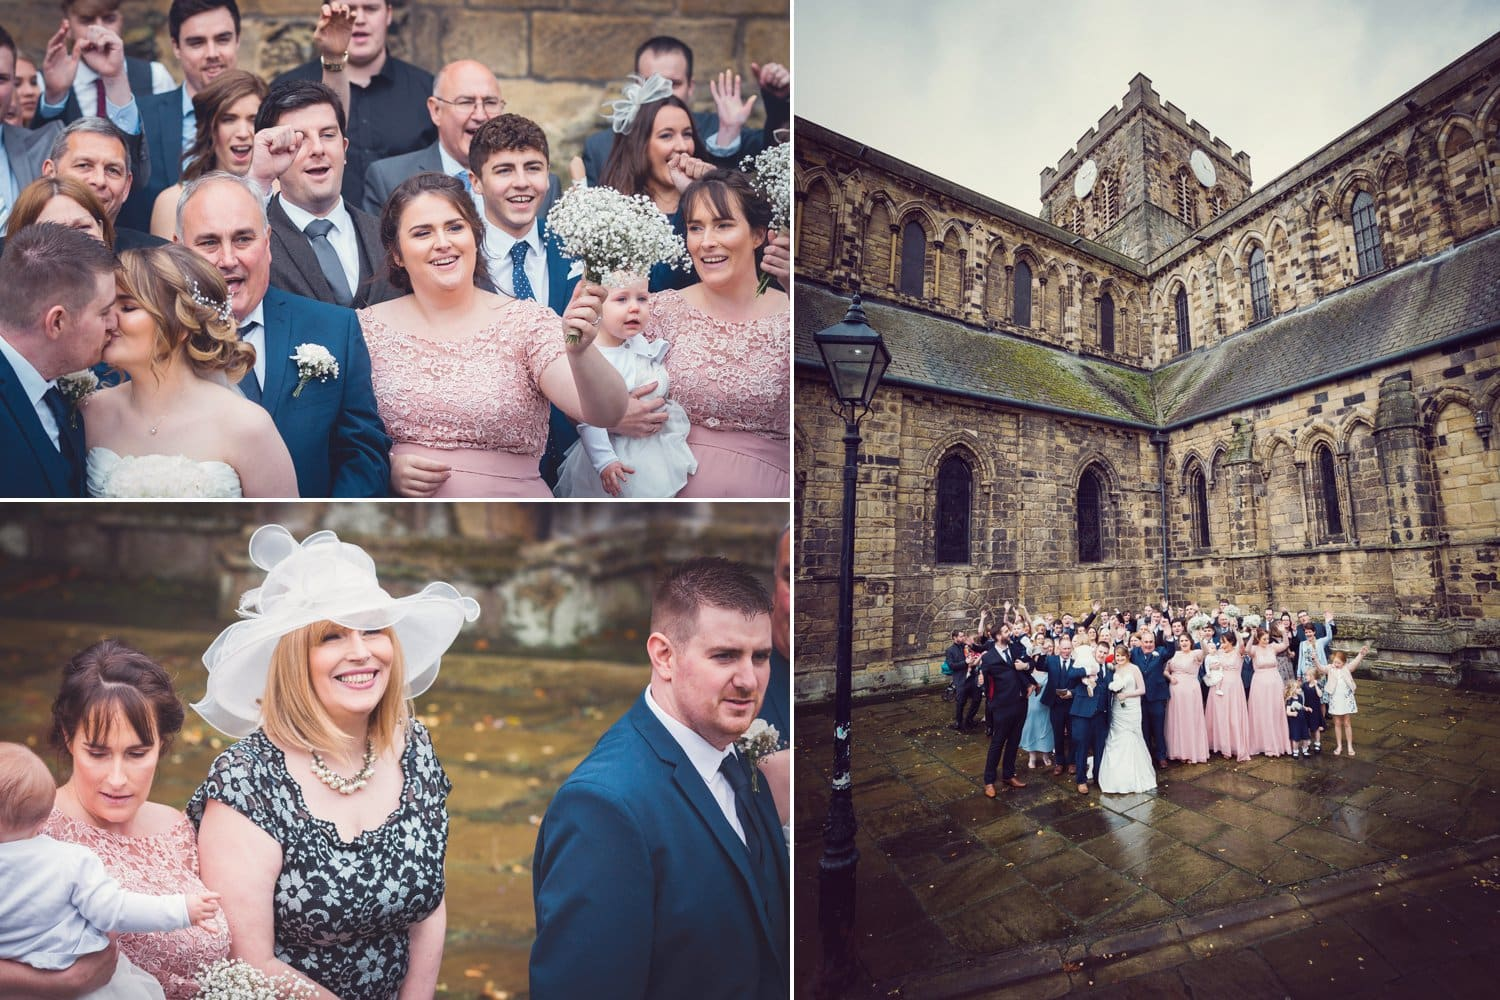 Hexham Abbey Wedding group photograph